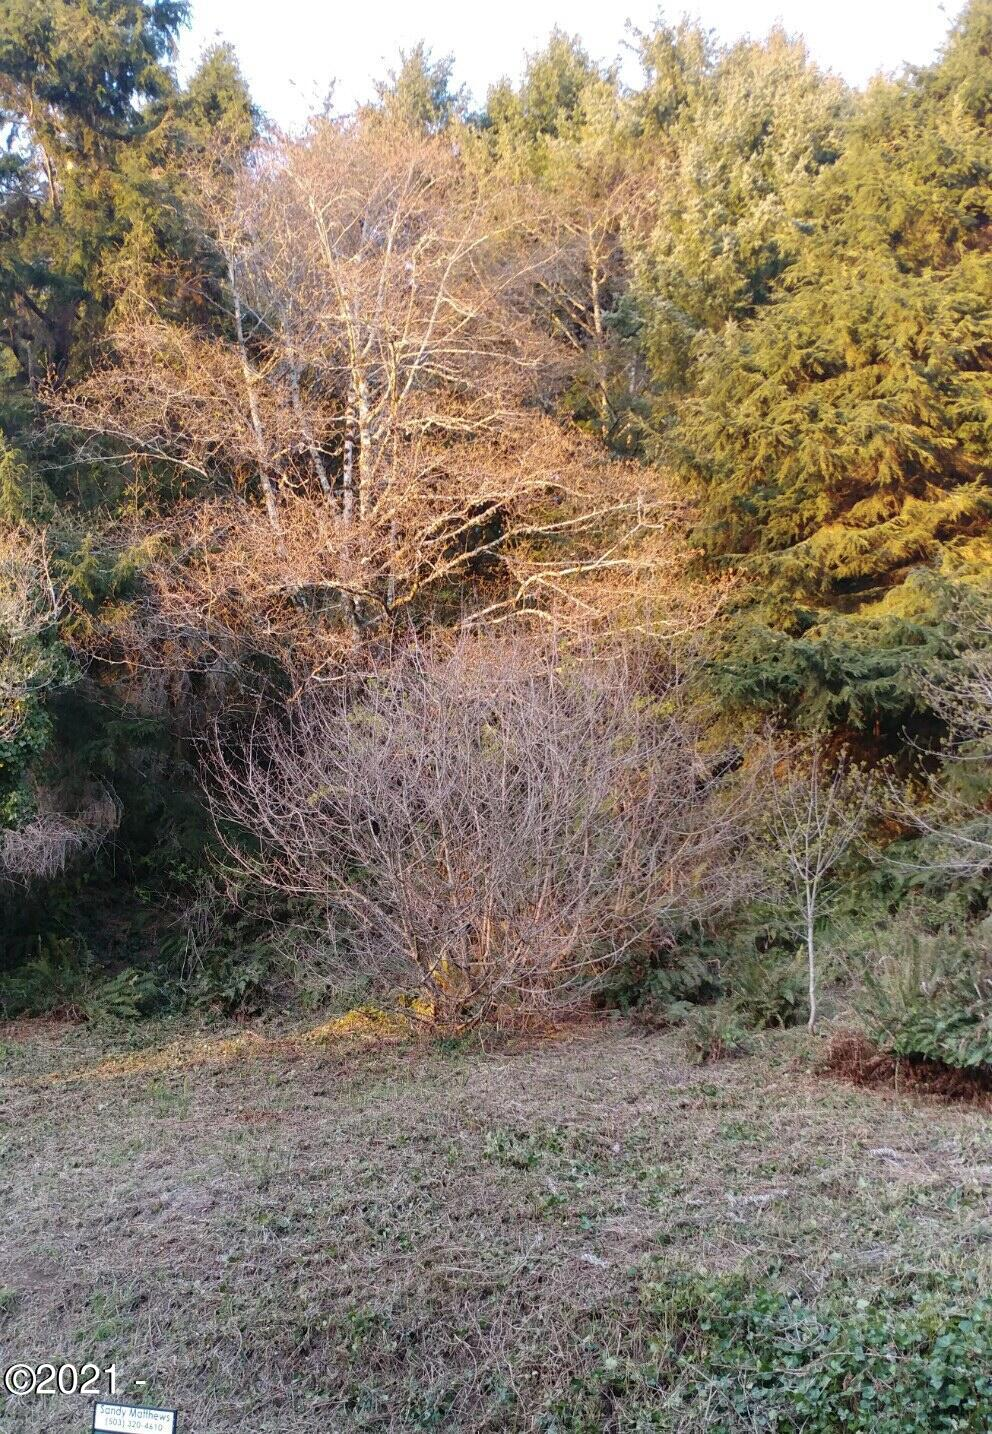 LOT 21 Sea Crest Dr, Otter Rock, OR 97369 - lot 21 new photo